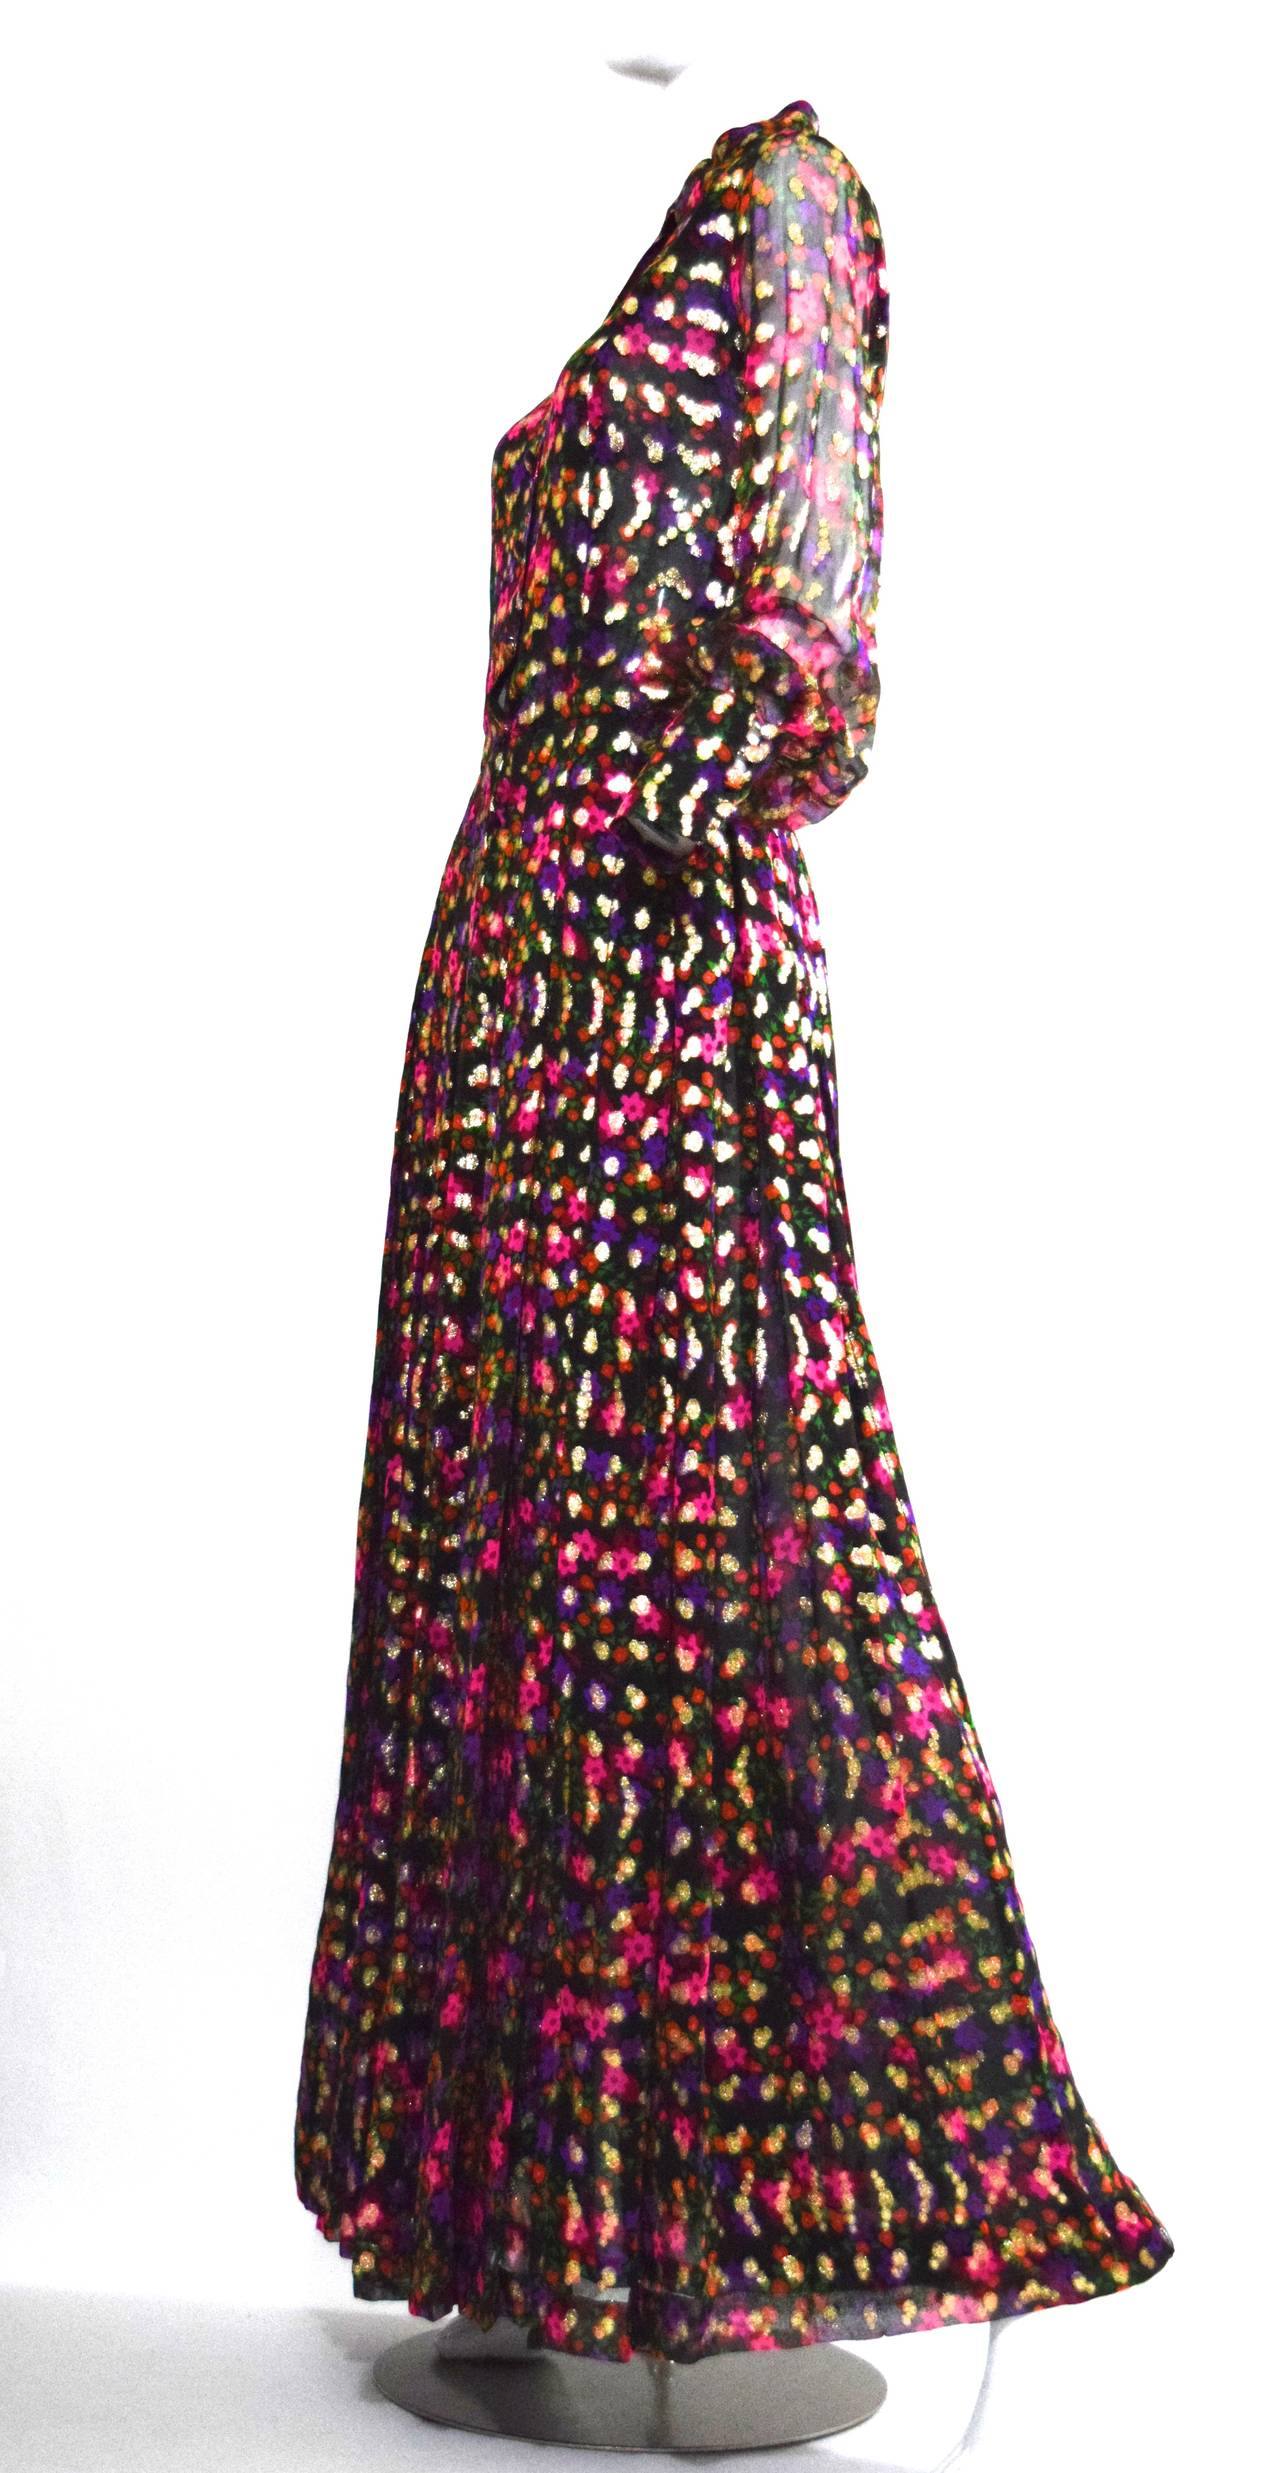 Stunning 1970s chanel haute couture gown no 45509 at 1stdibs for Chanel haute couture price range